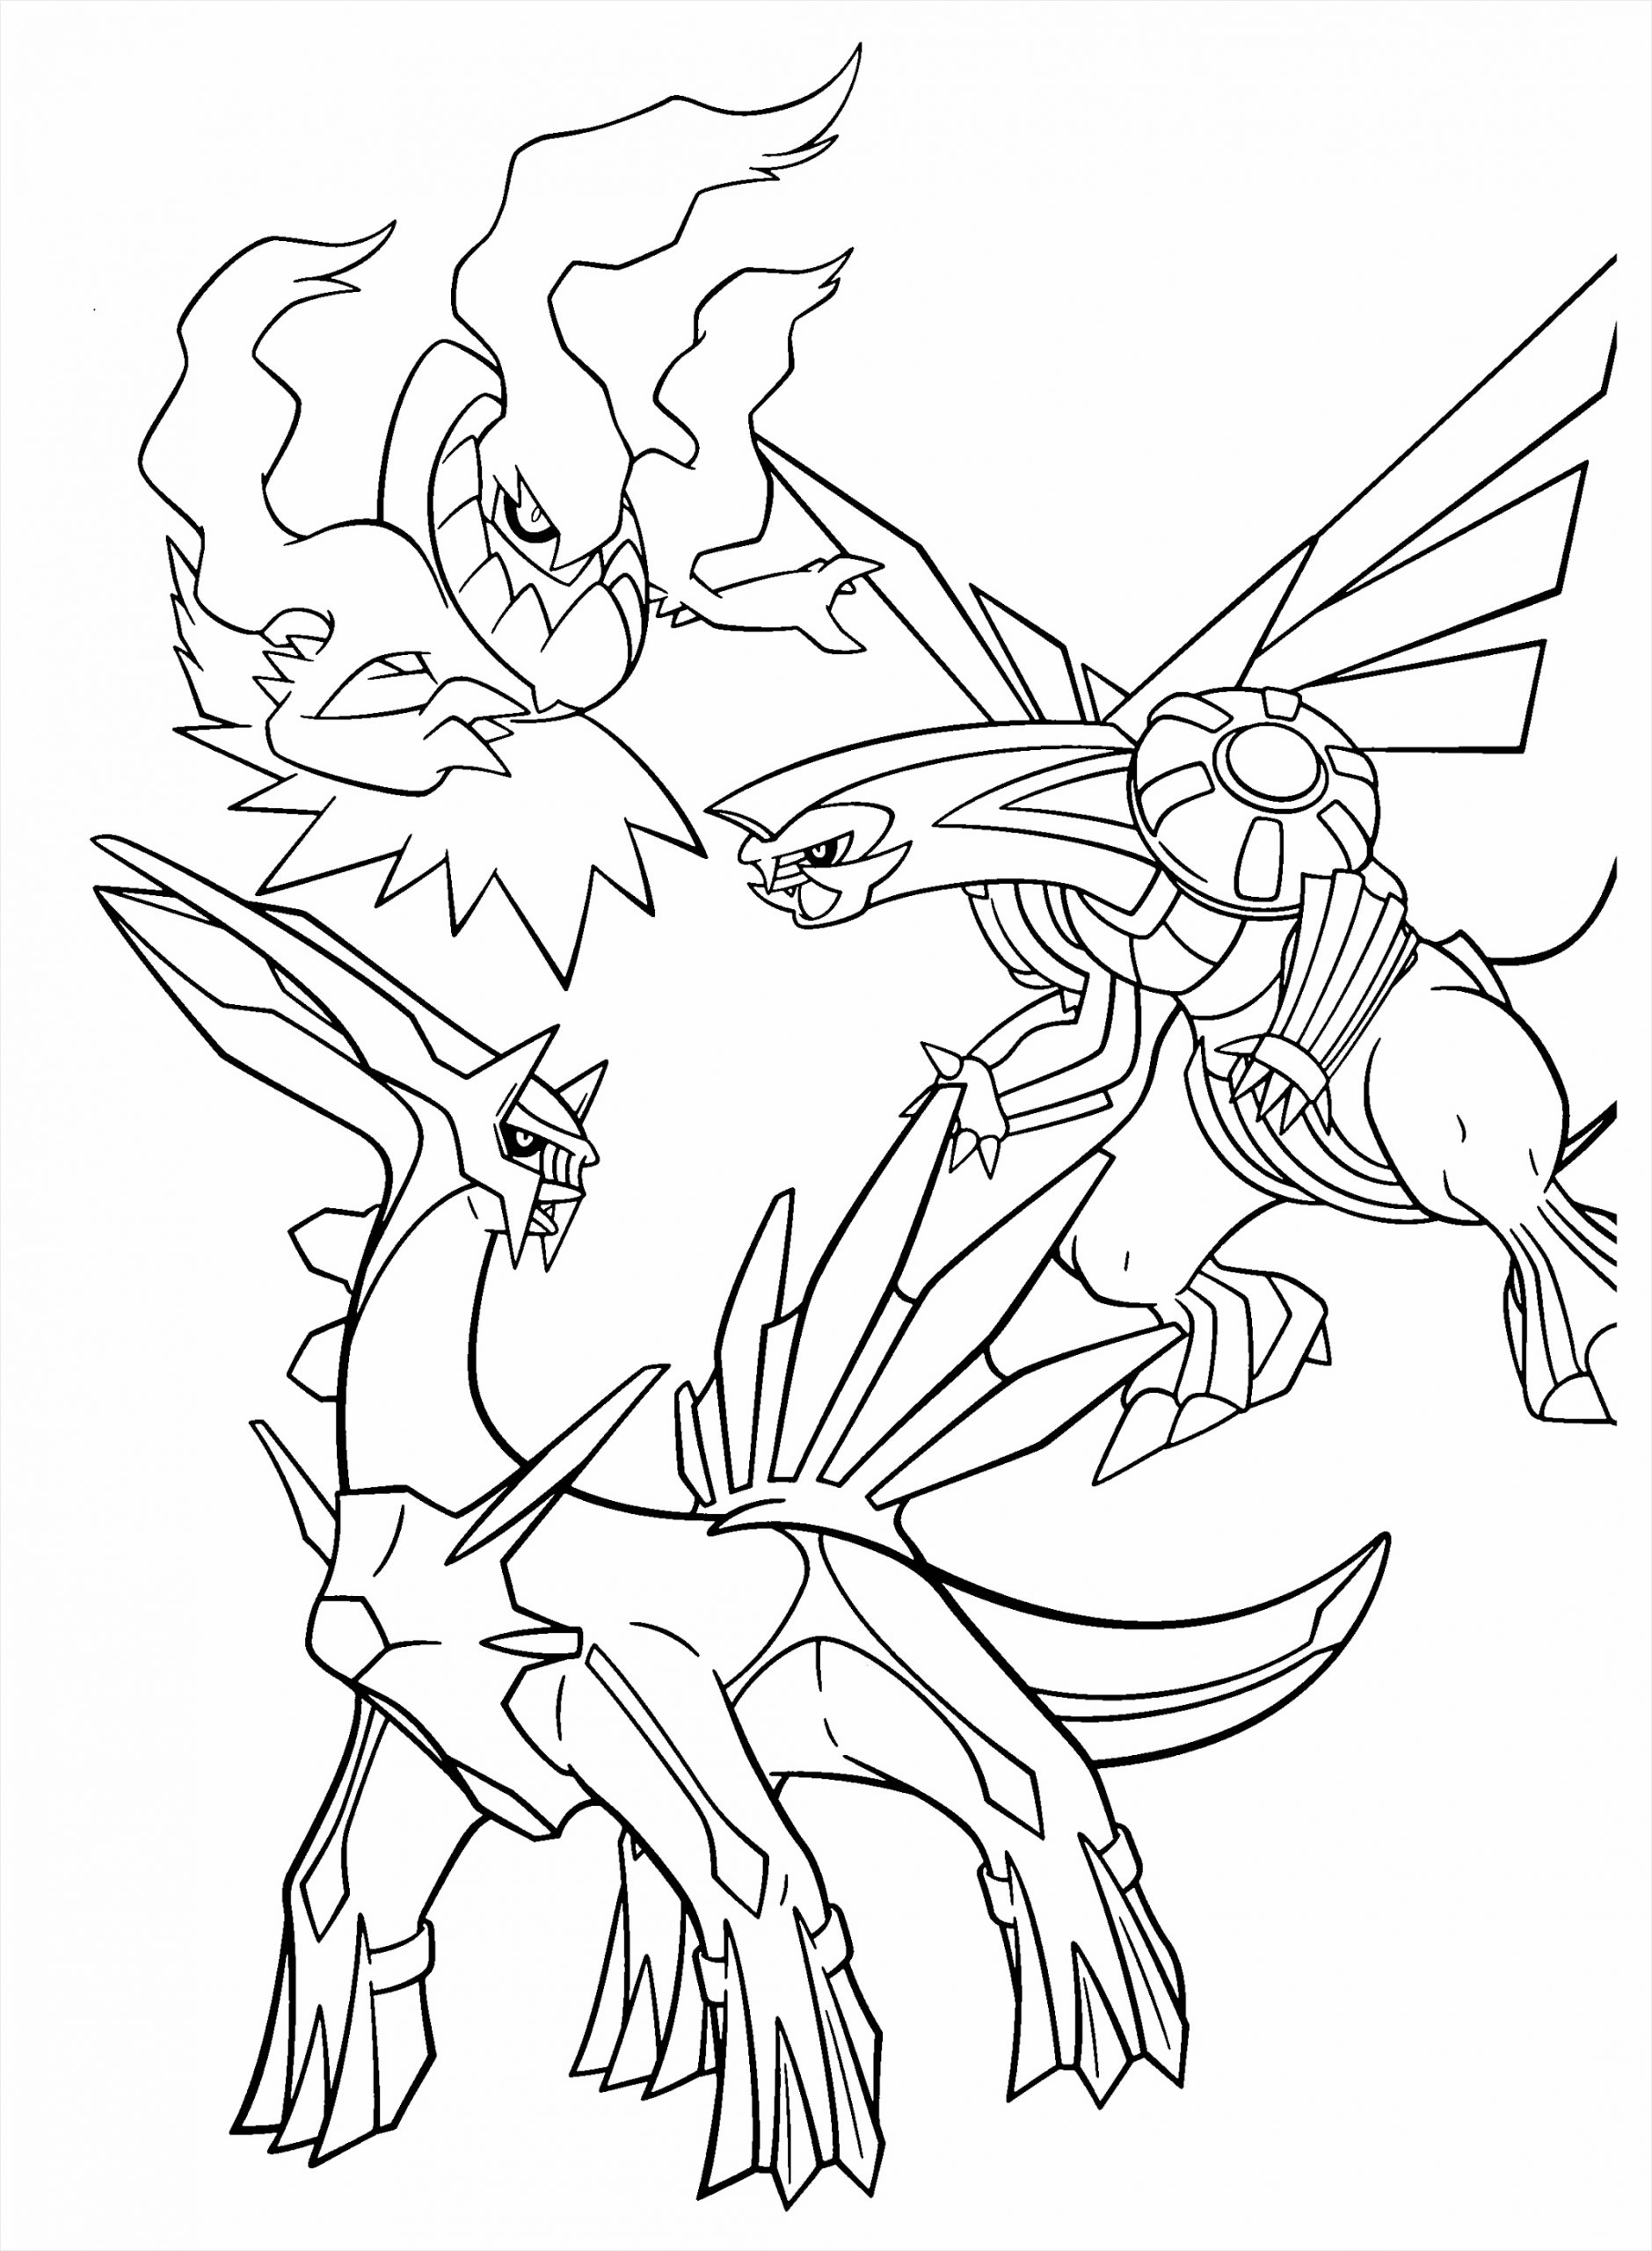 Pokemon Dialga And Palkia Coloring Pages Best Coloring